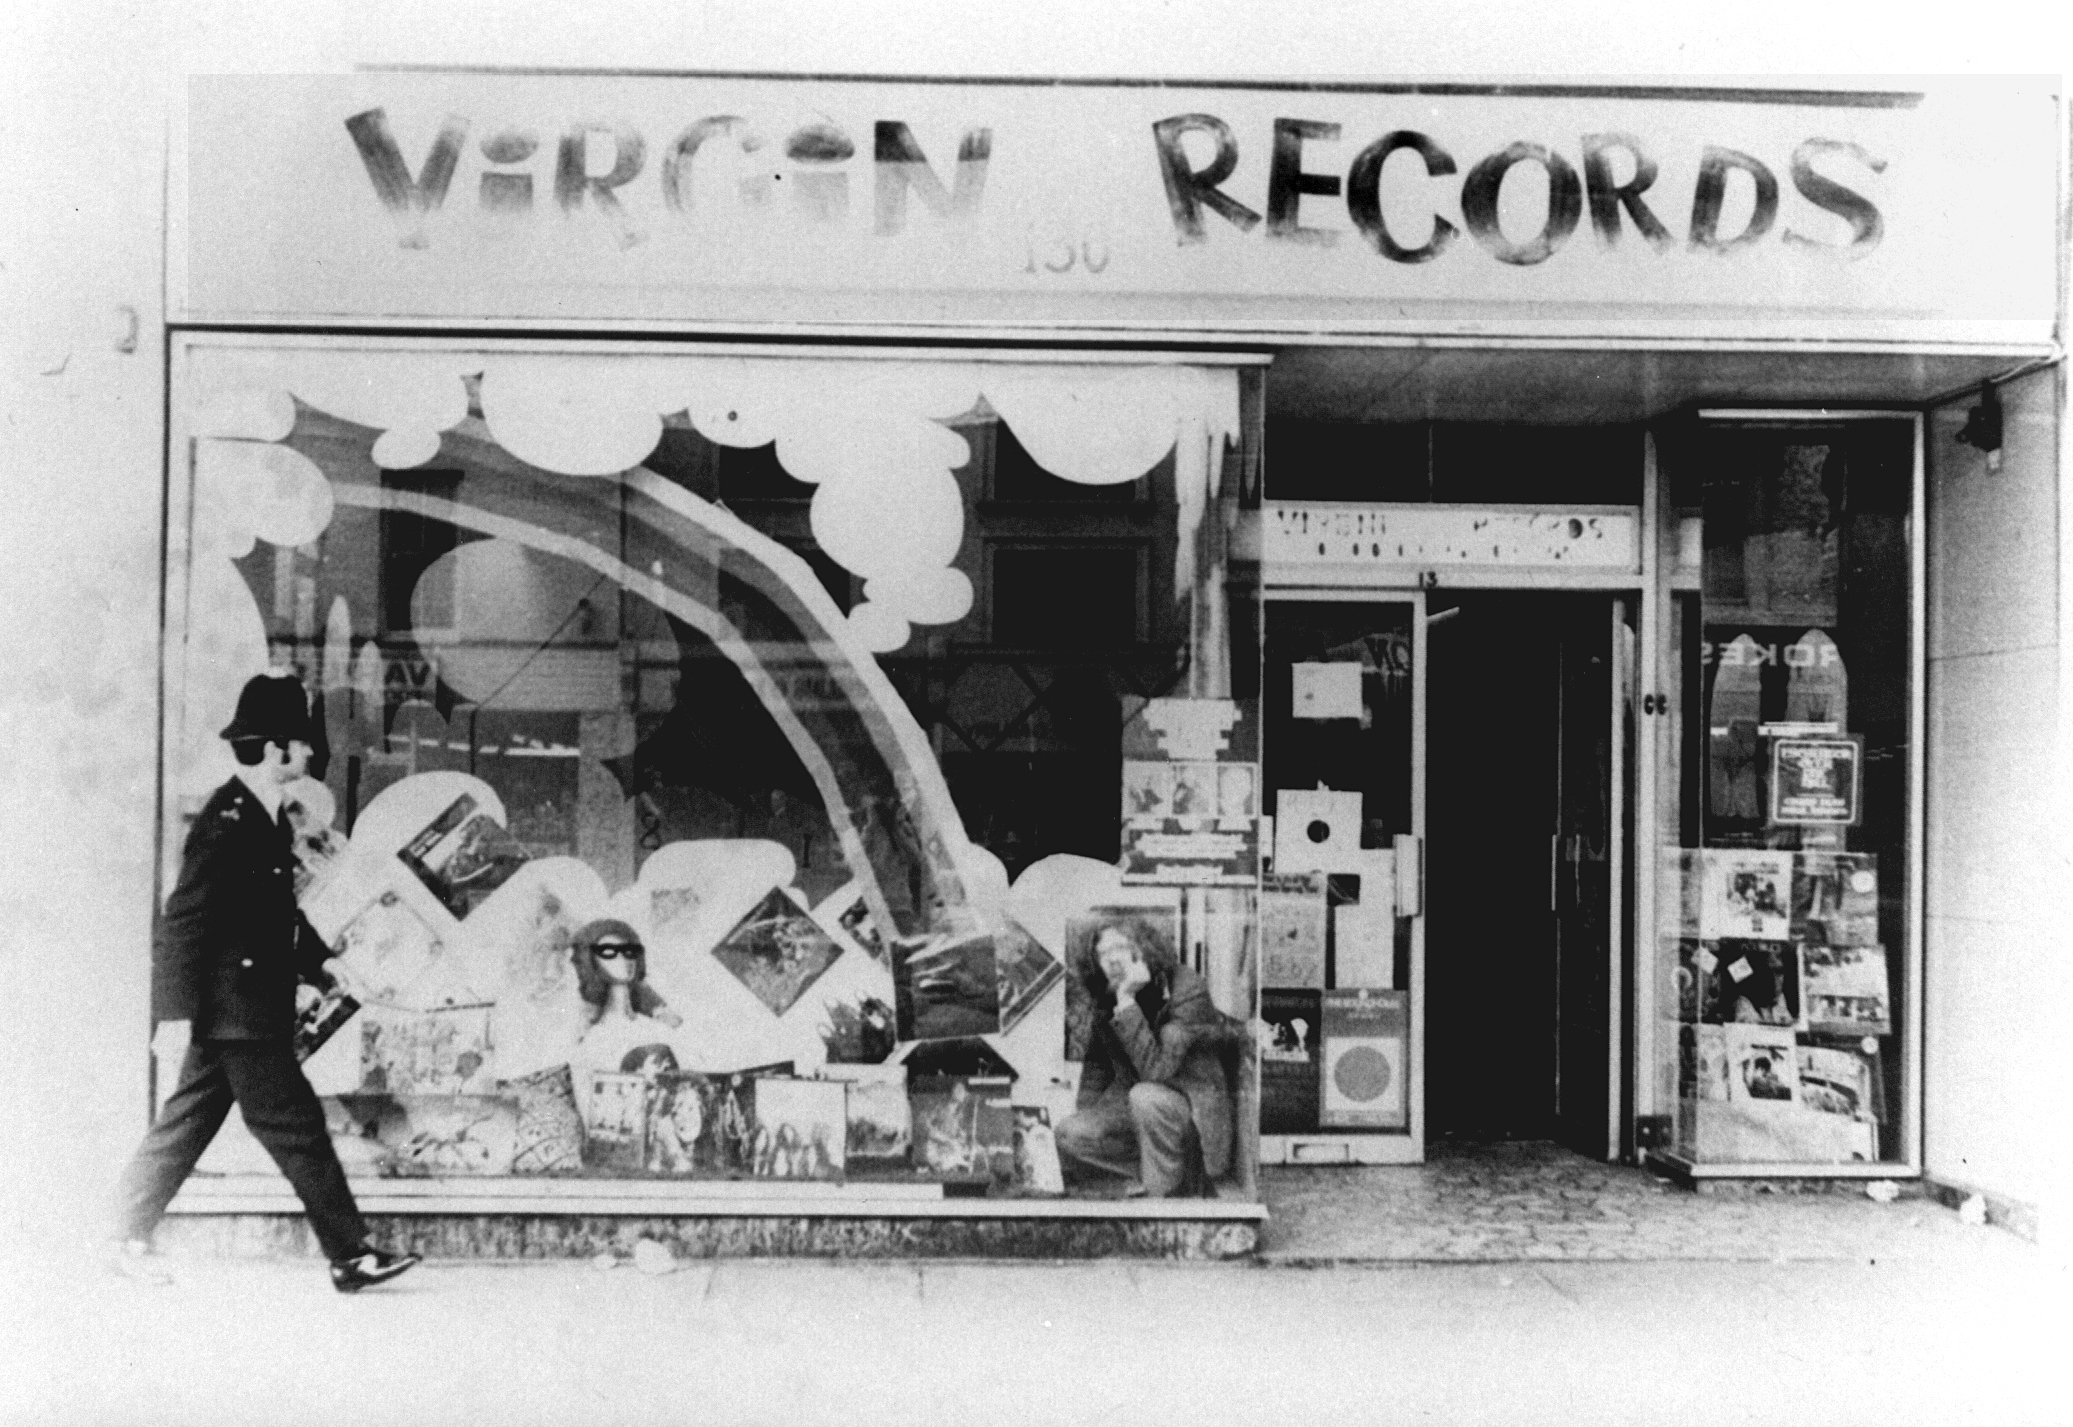 The Virgin Records store in Notting Hill, 1971